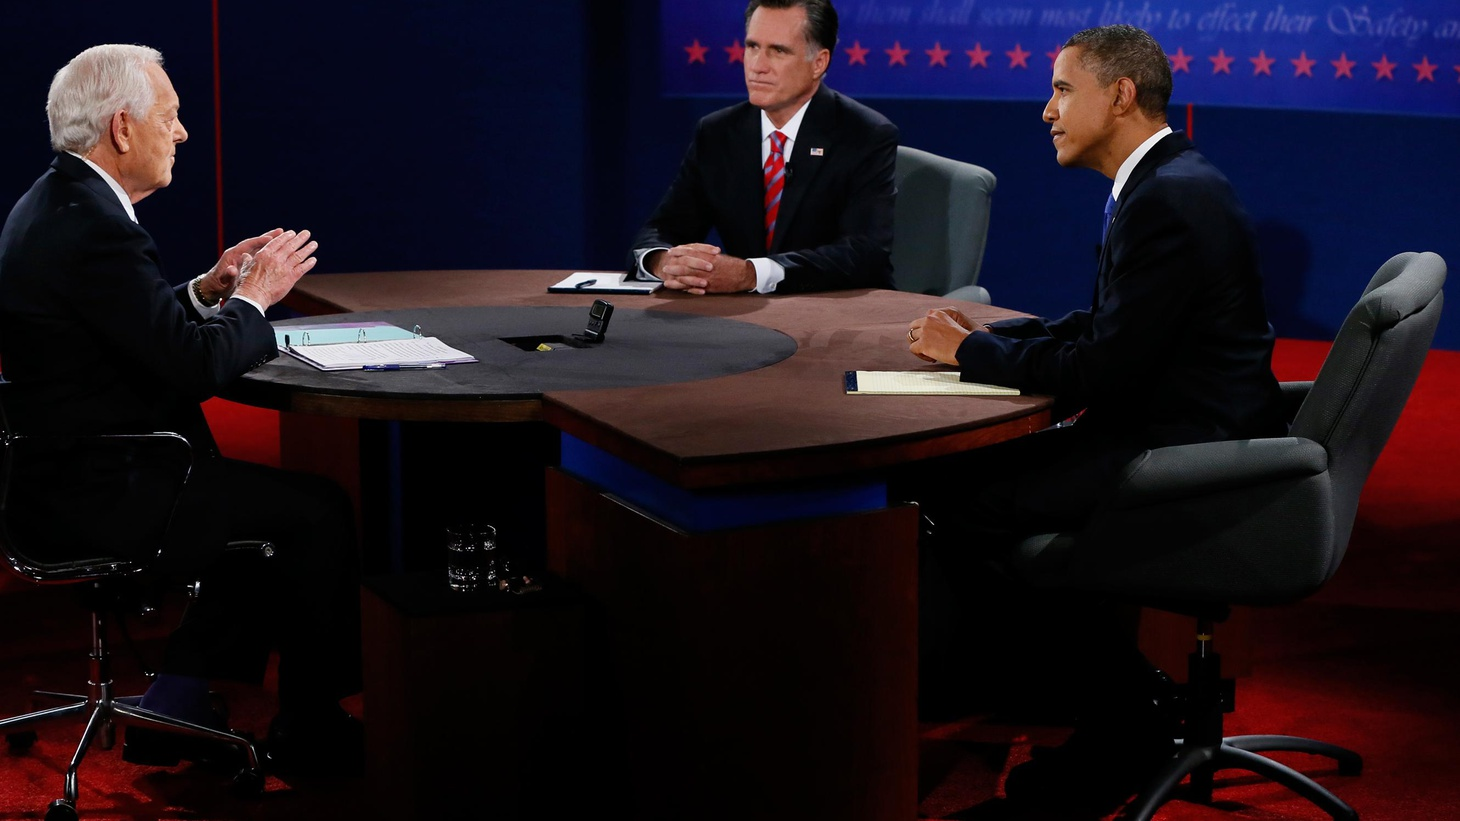 The debates are over and it's on to the swing states in a presidential campaign that's almost over. Is last night's debate on foreign policy likely to make a difference?